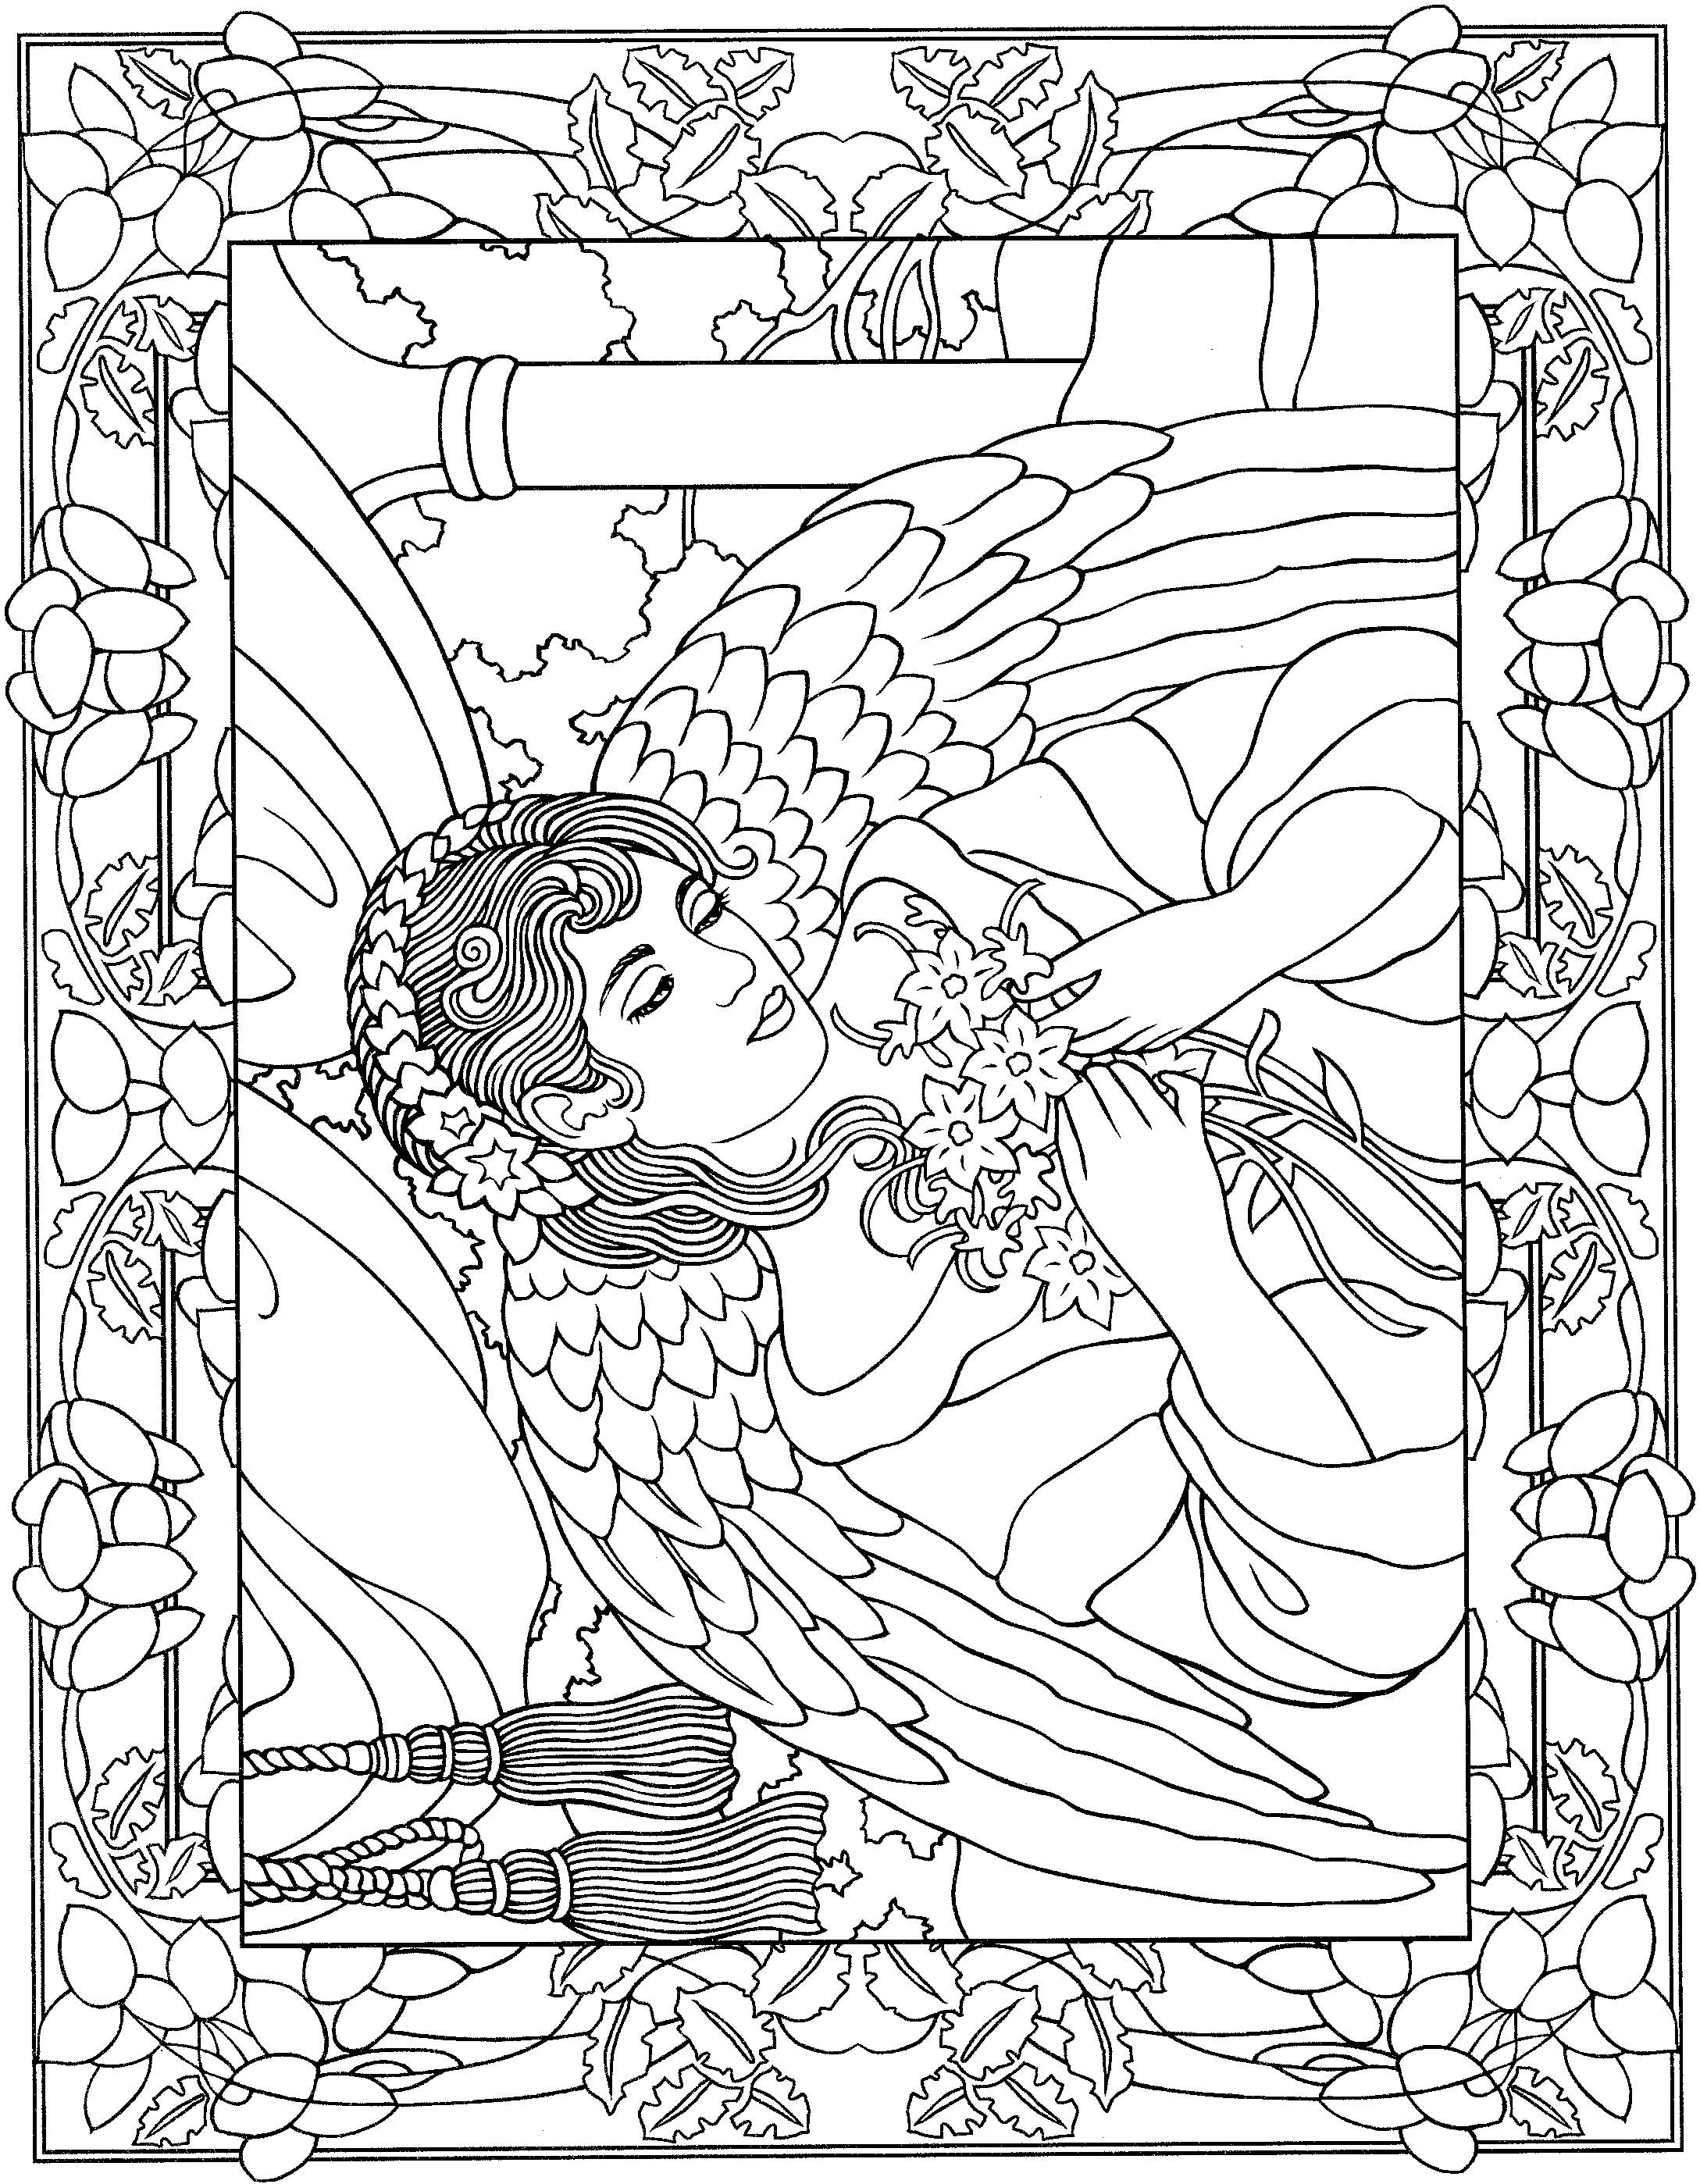 Beautiful angel coloring page | angeles | Pinterest | Angel, Adult ...